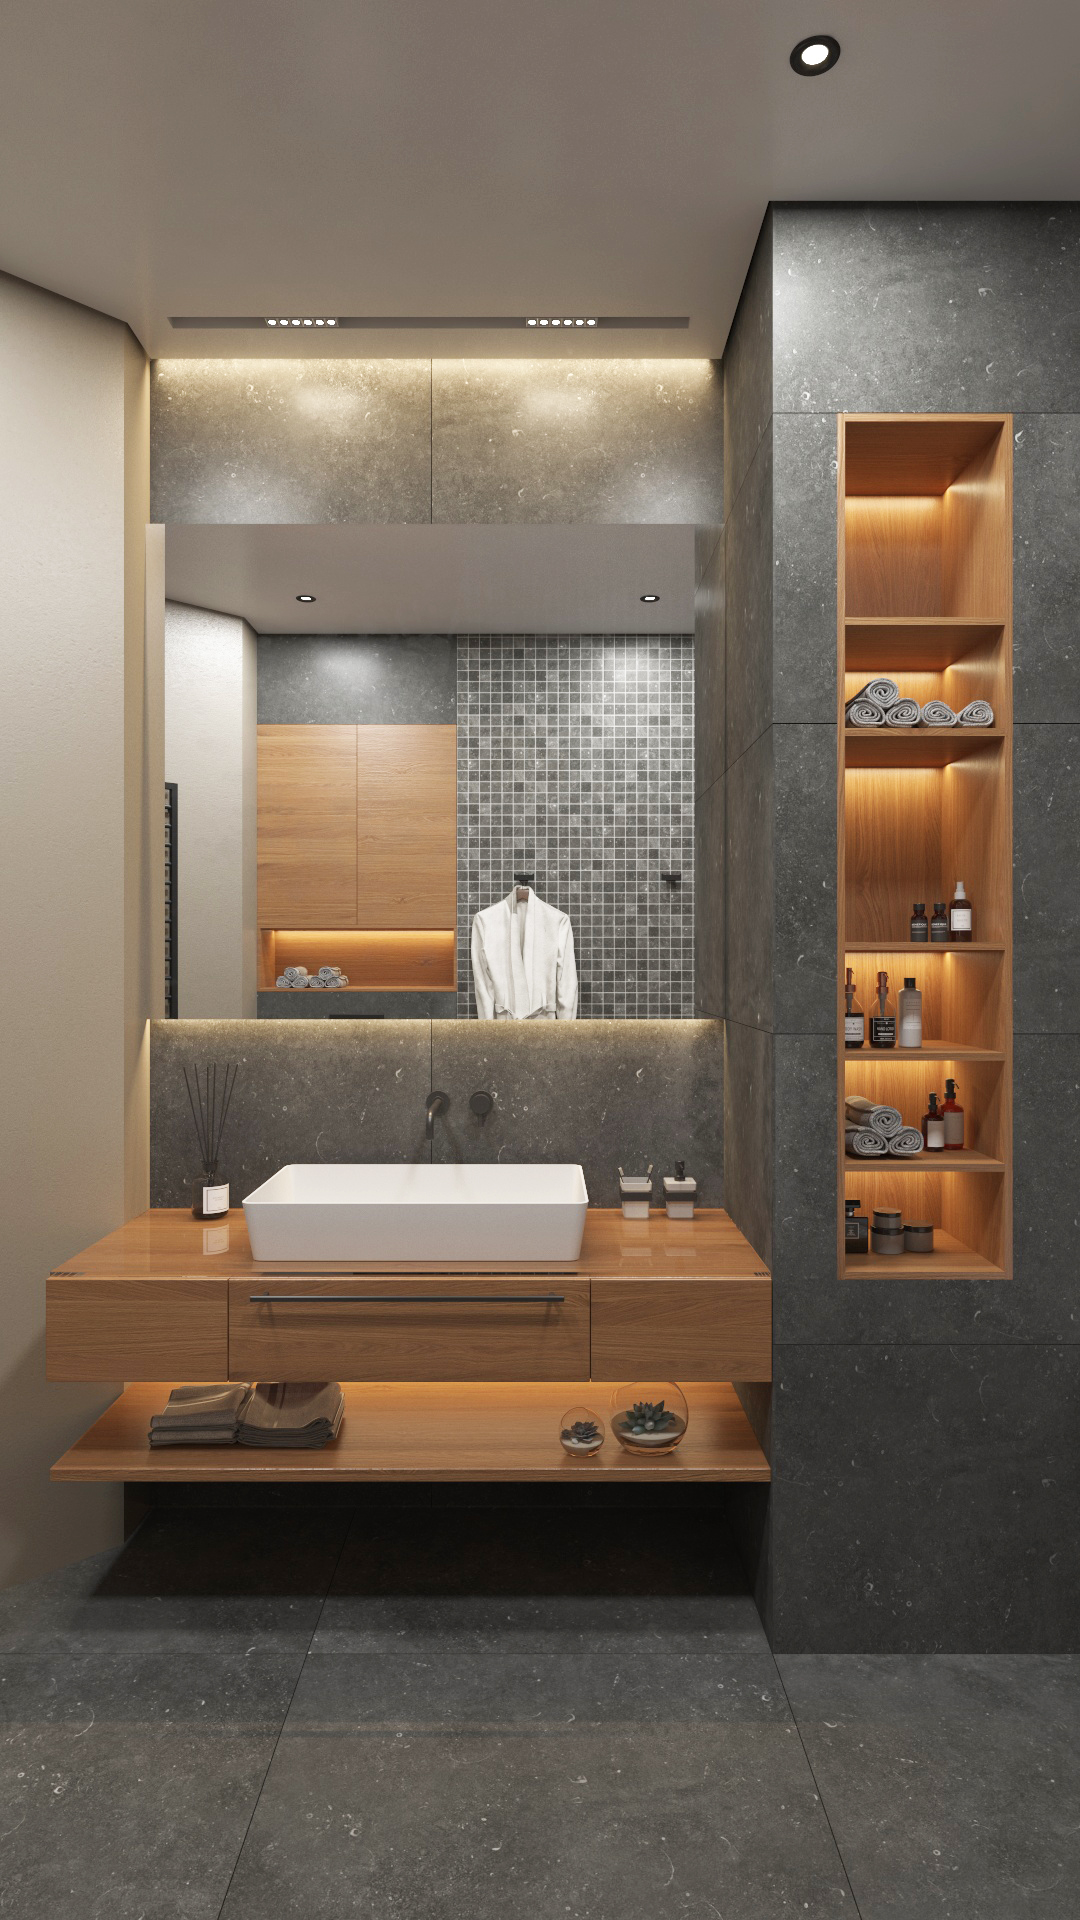 LuxeHome_Bathroom_001